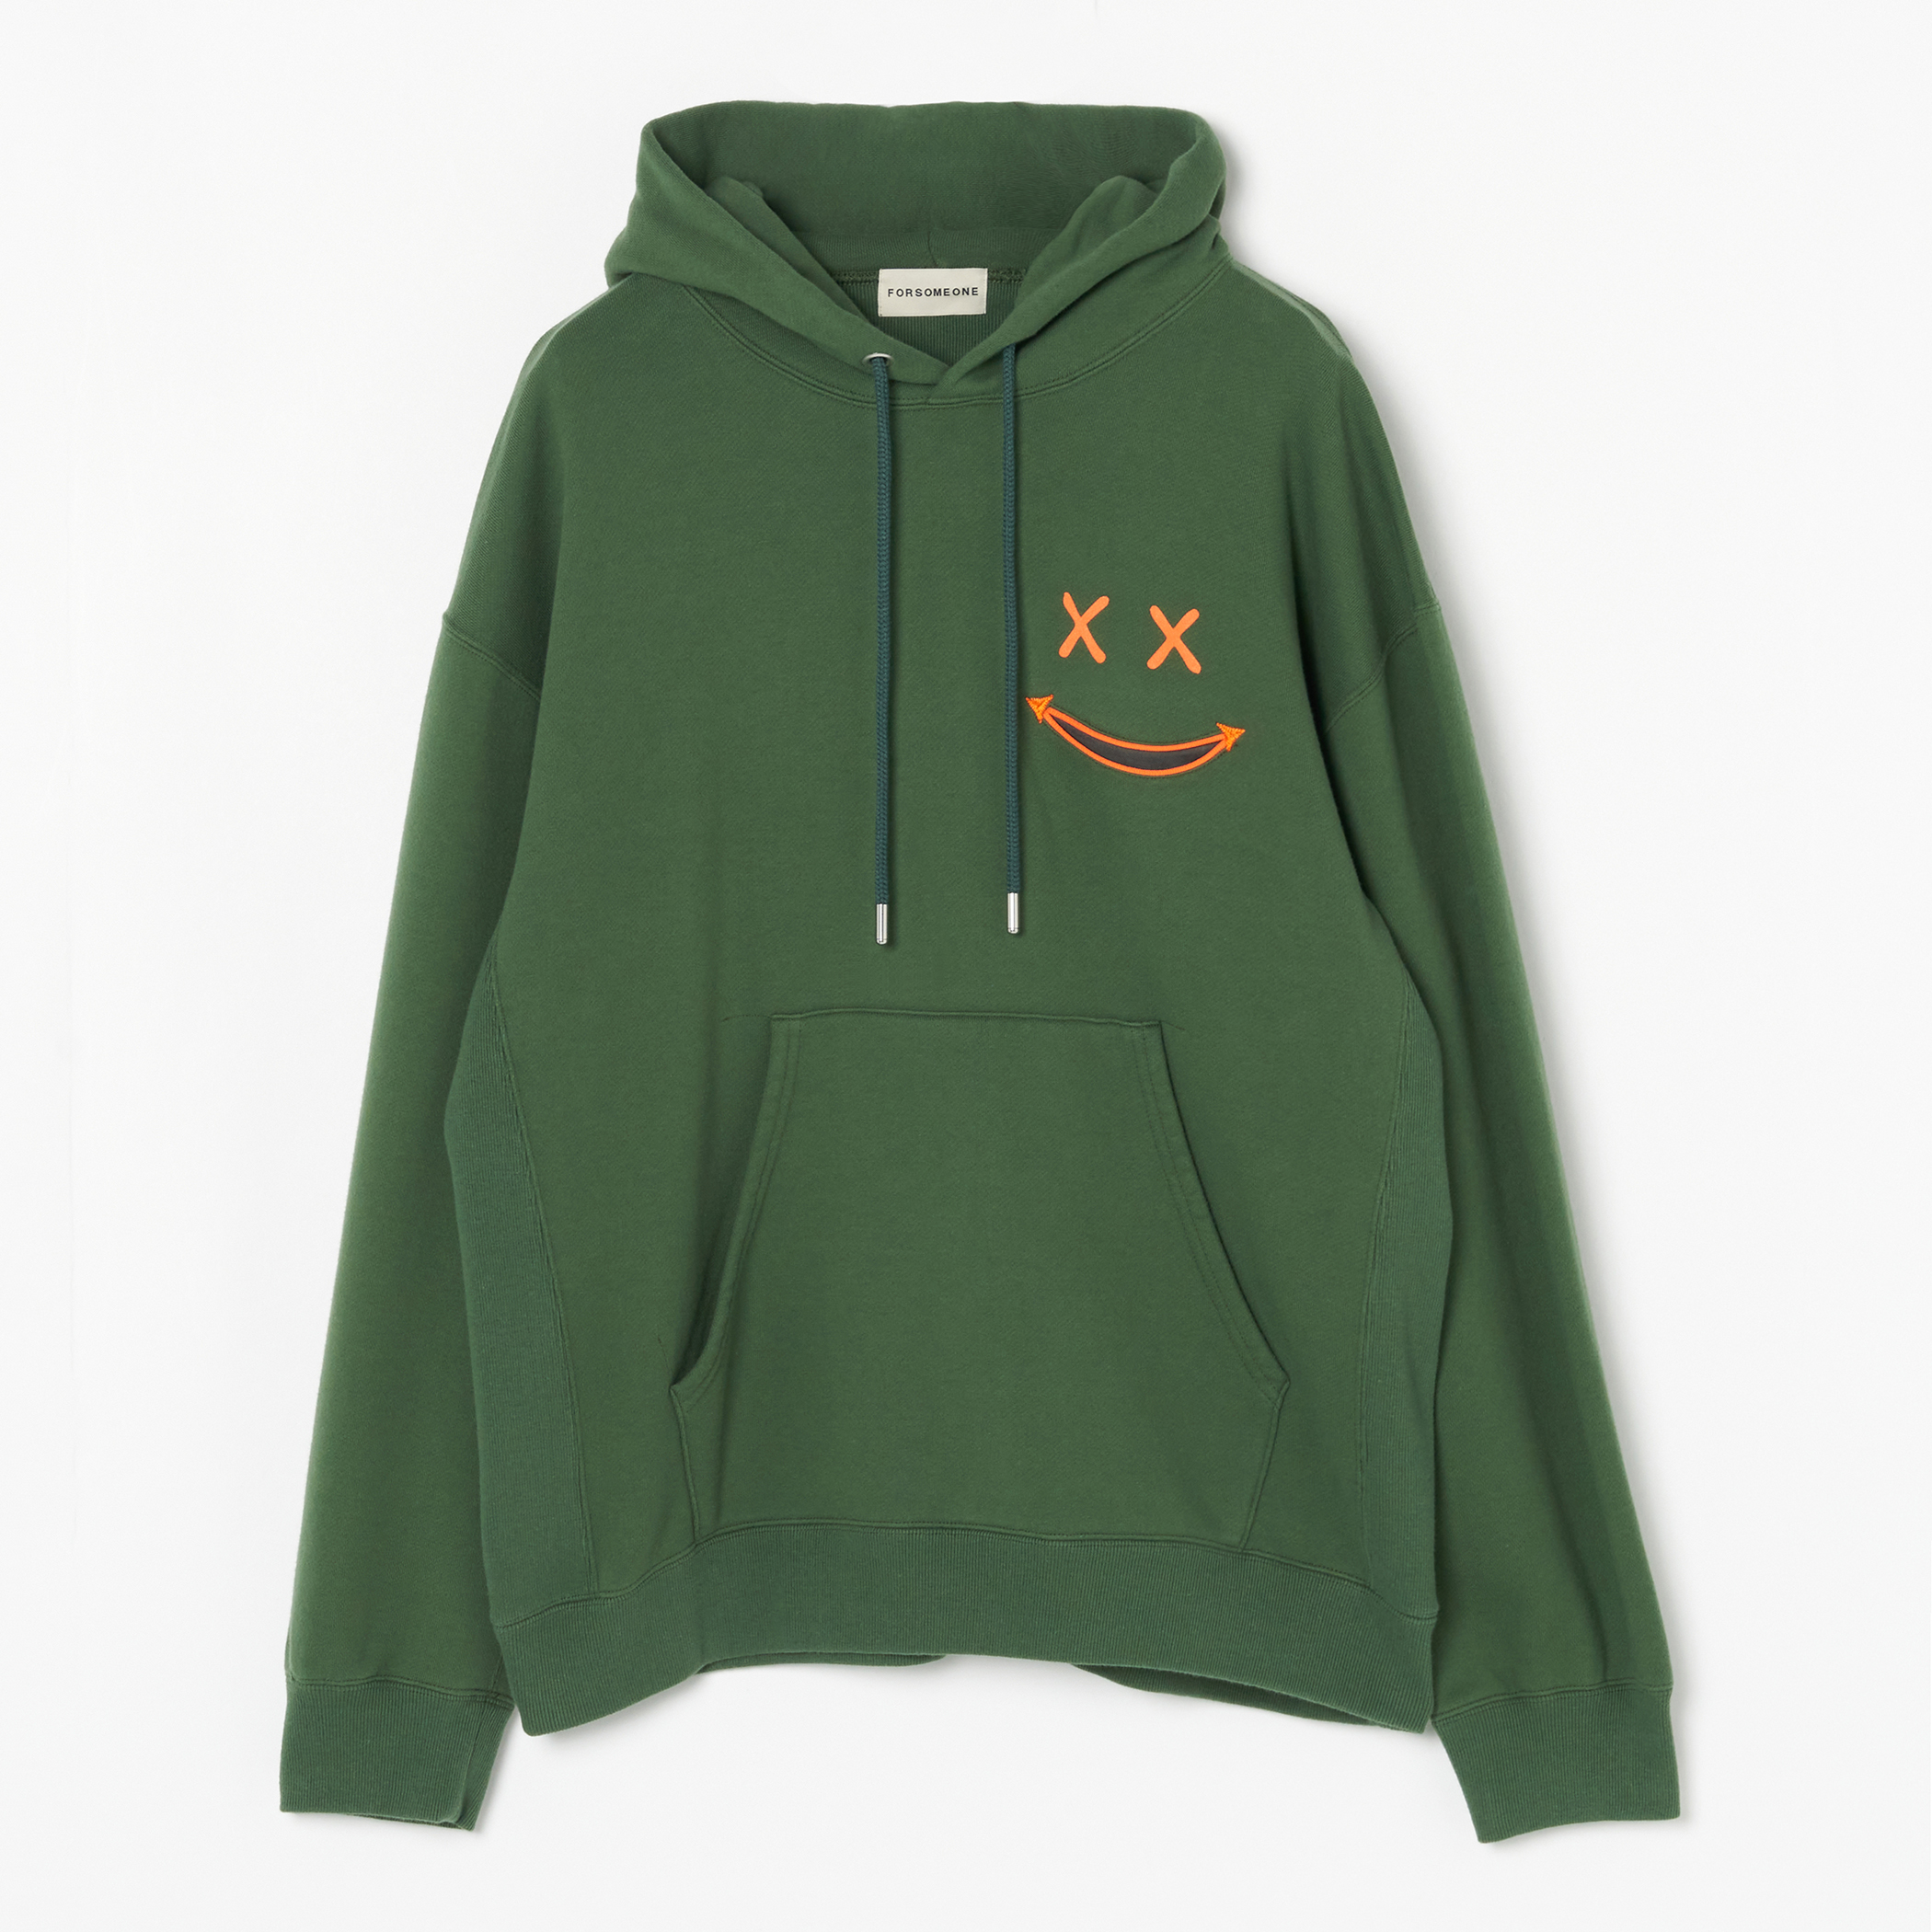 SMILE HOODIE 詳細画像 Green 1